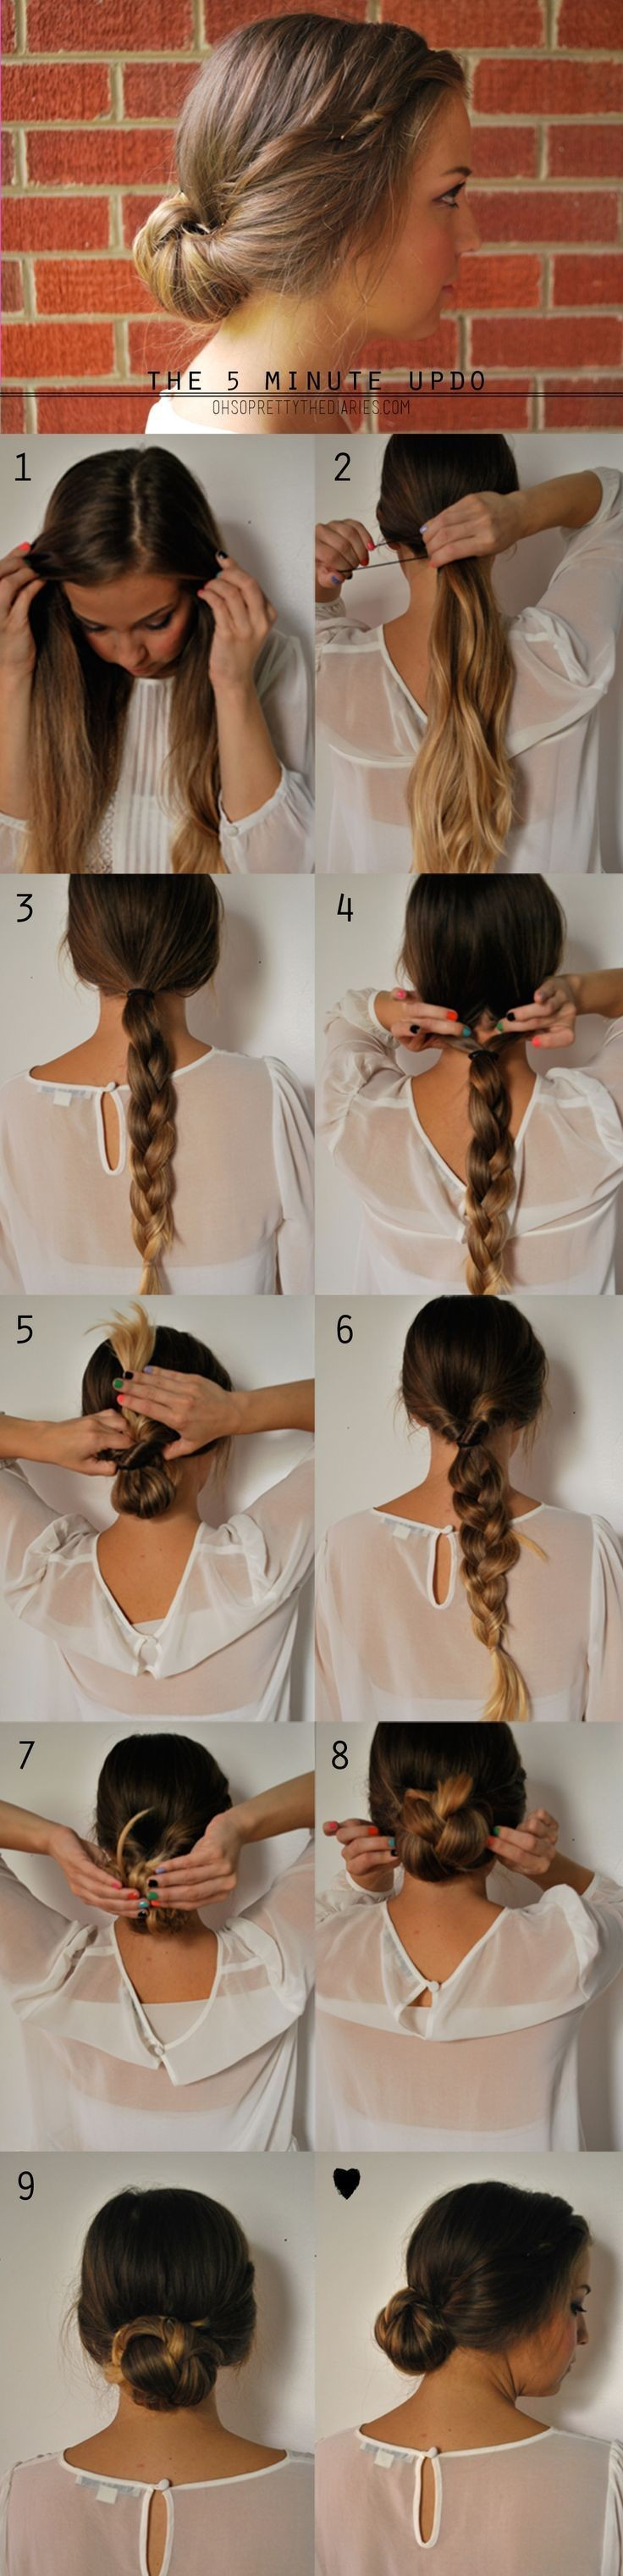 5 Minute Updo Hairstyle Tutorial